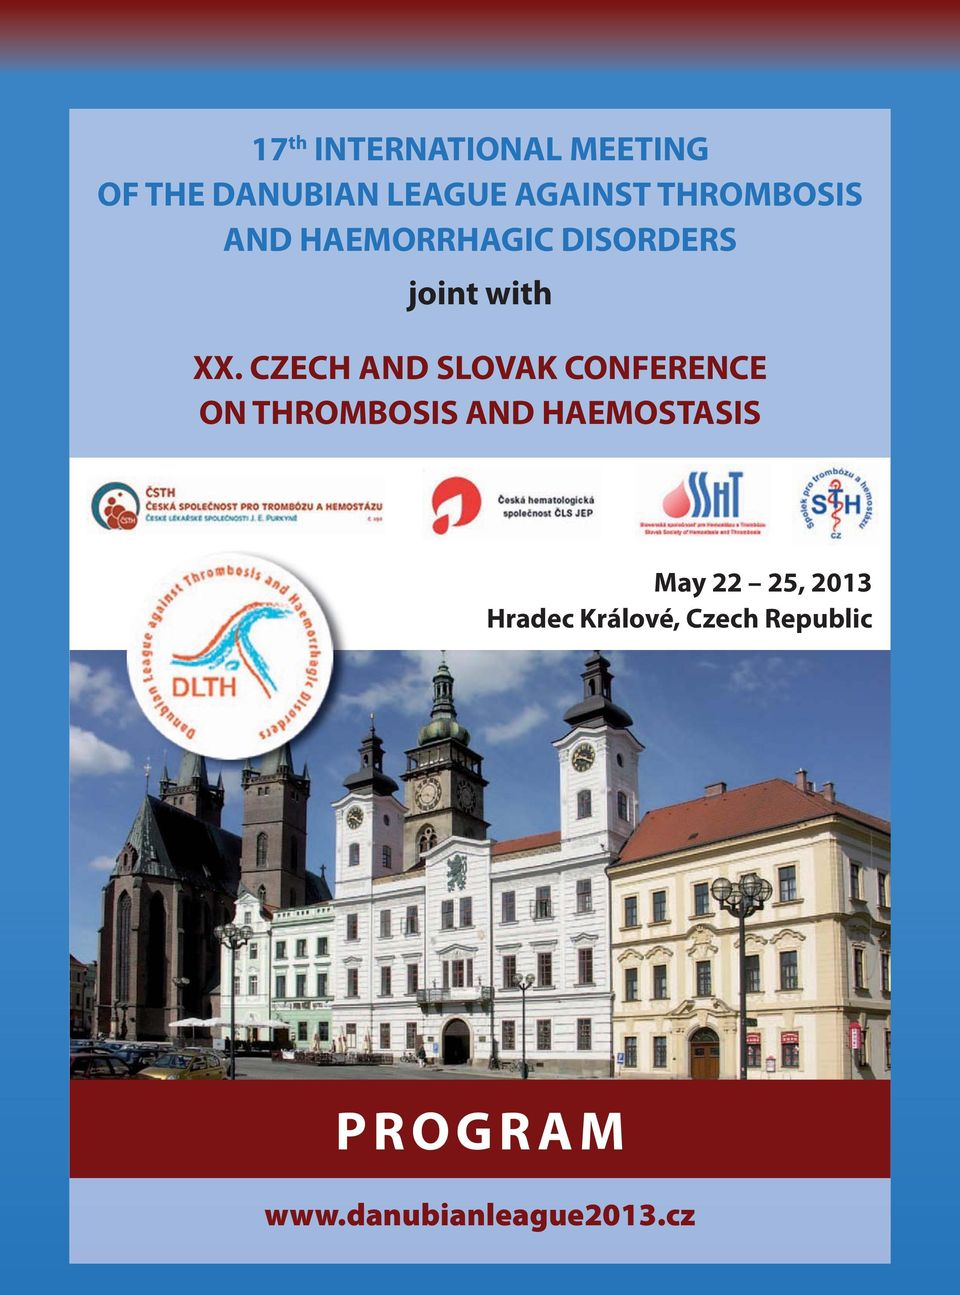 CZECH AND SLOVAK CONFERENCE ON THROMBOSIS AND HAEMOSTASIS May